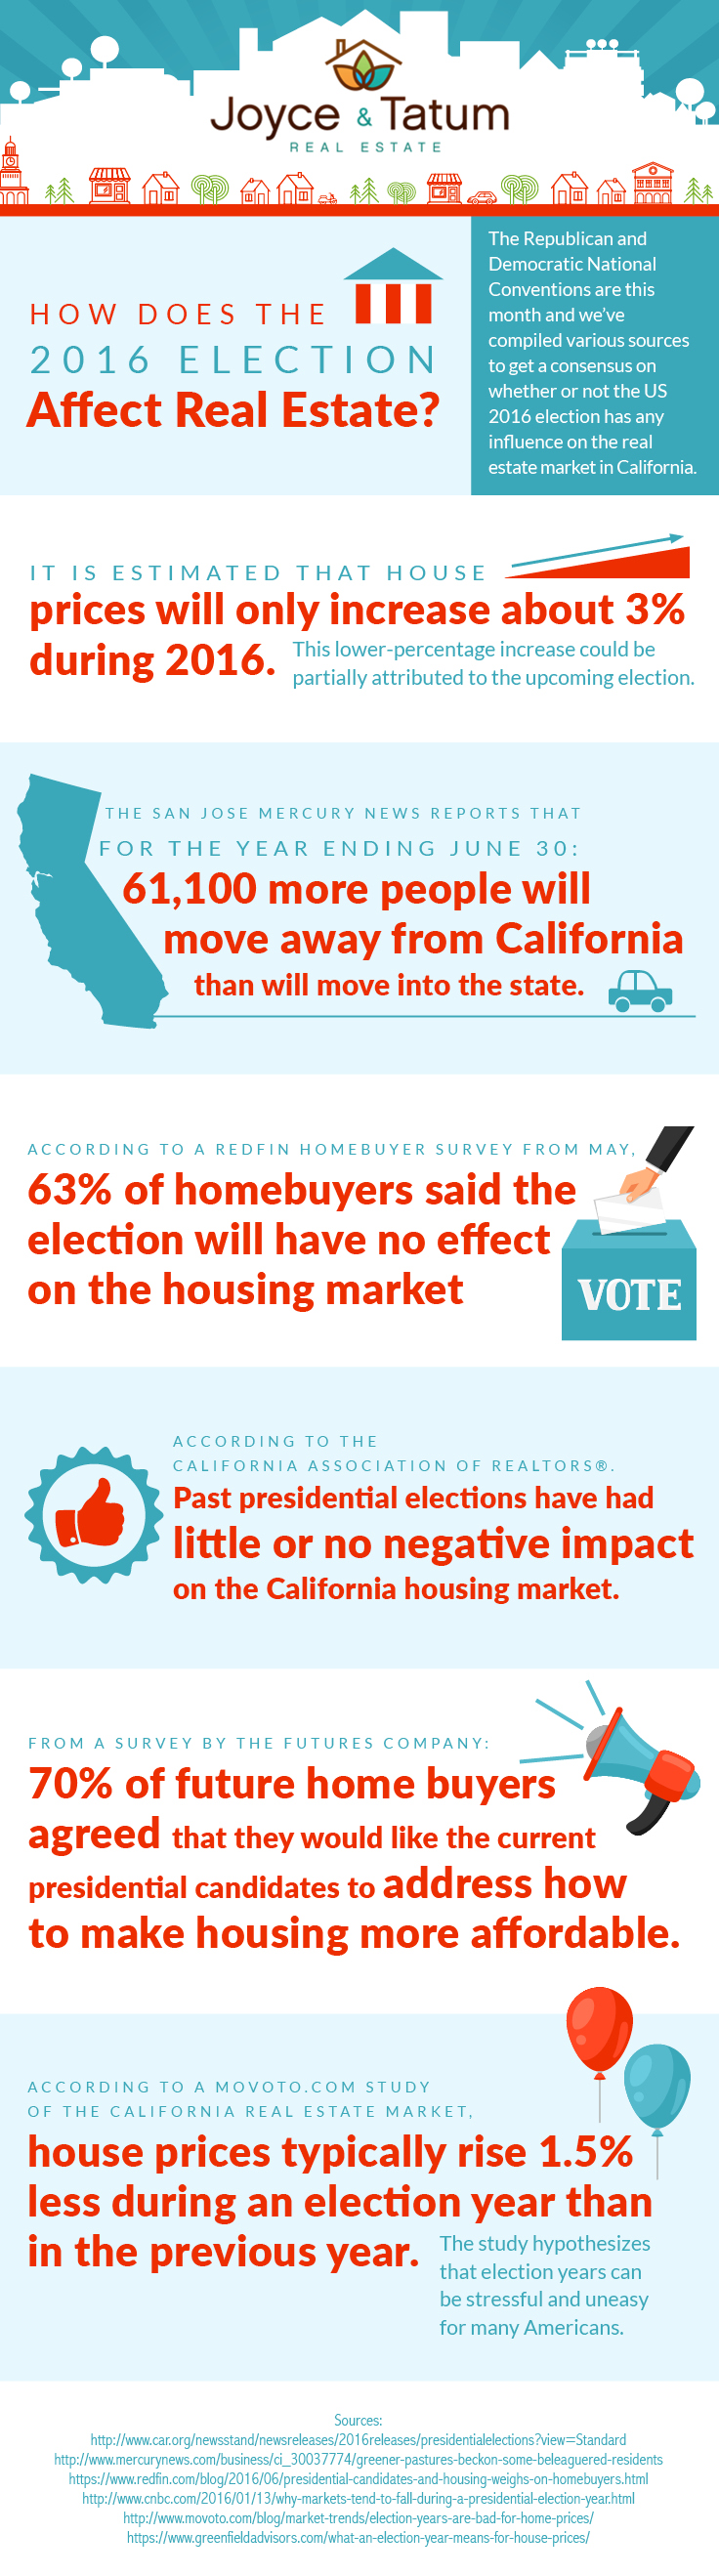 infographic about how the 2016 US presidential election affects real estate